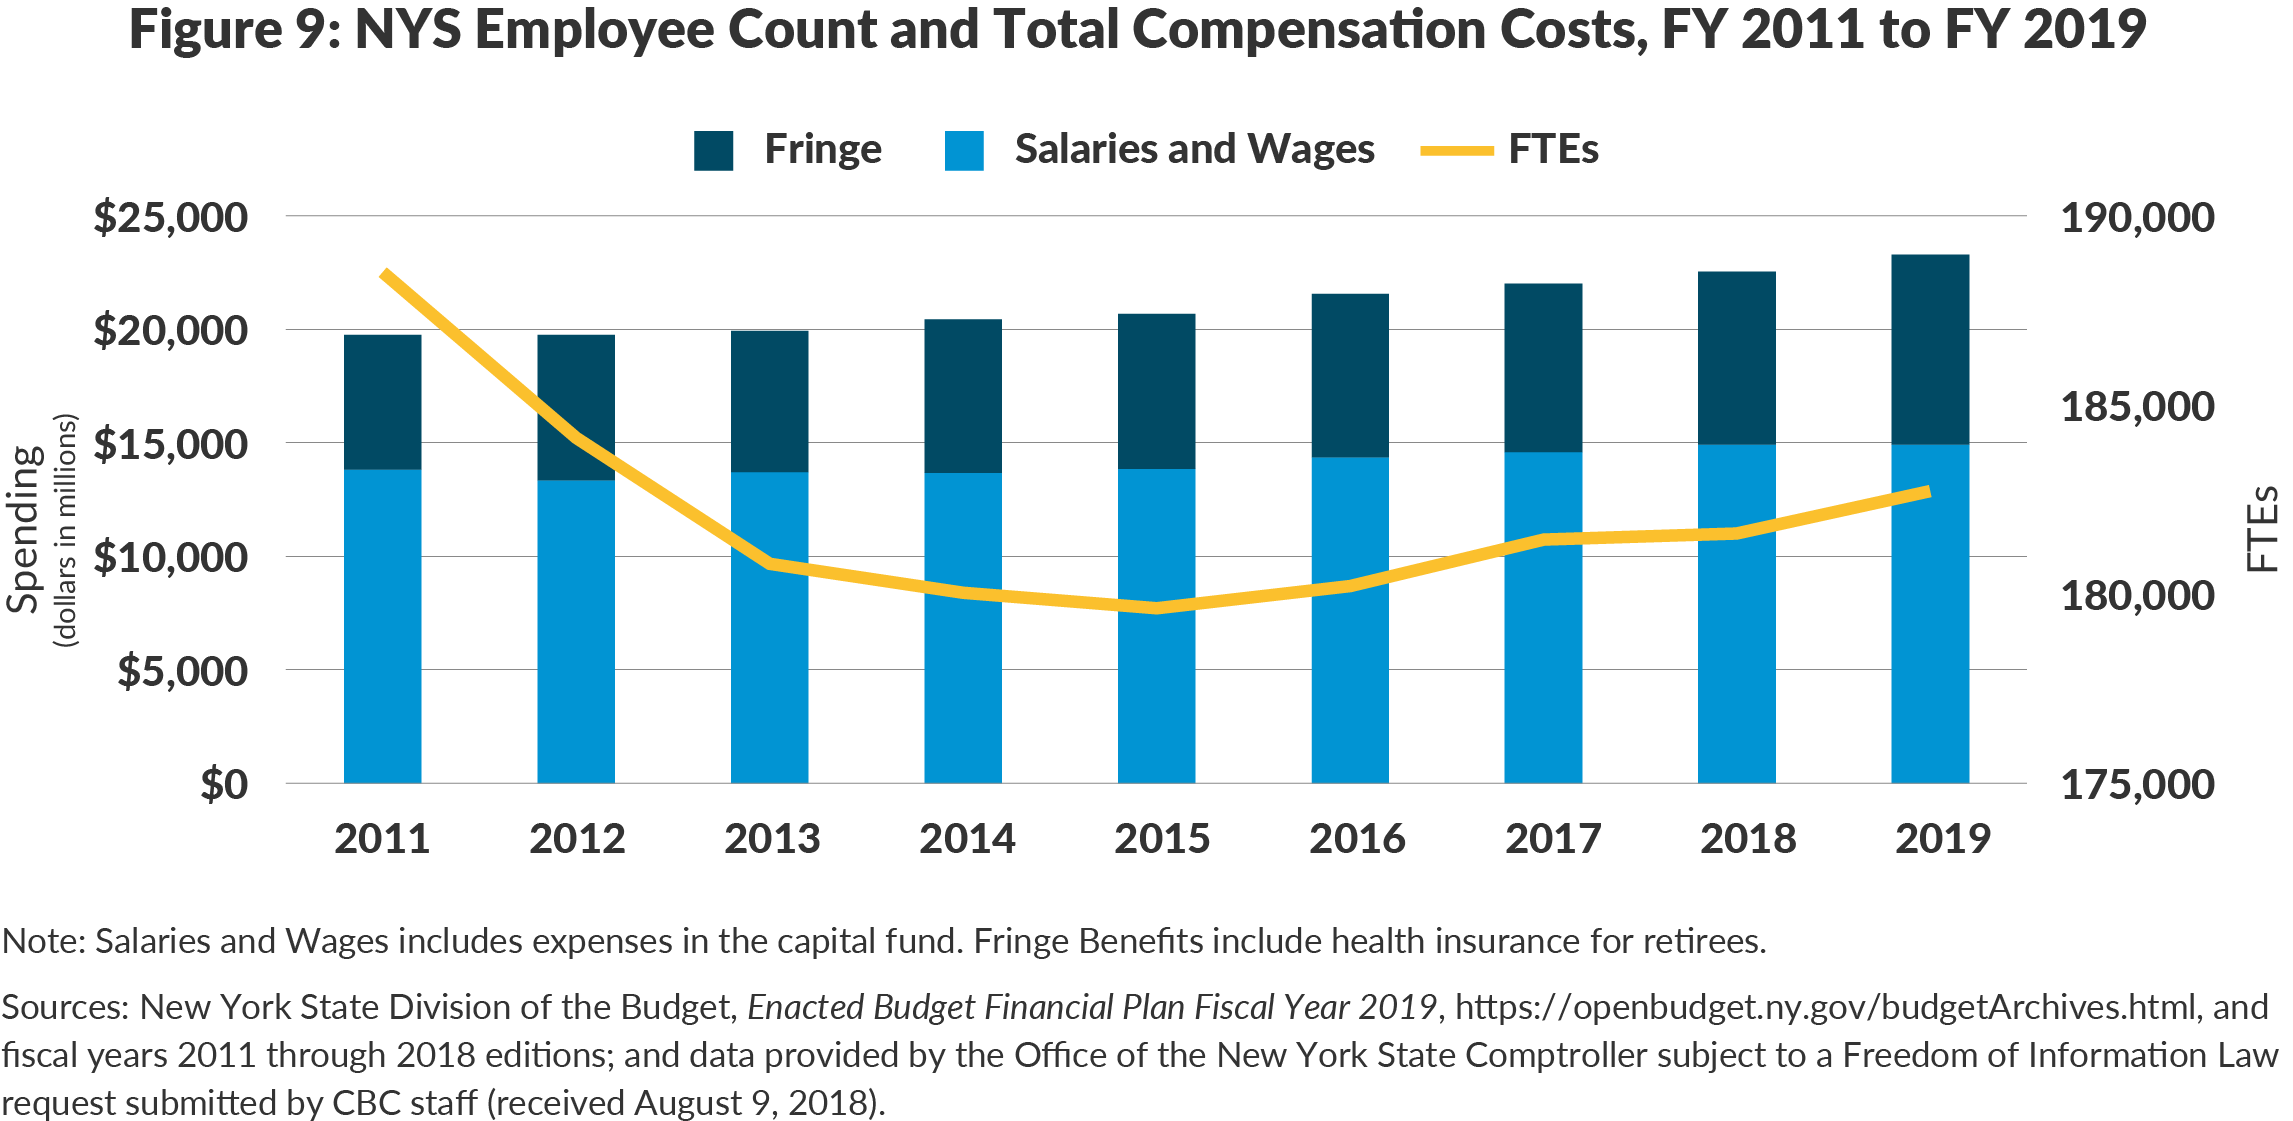 Figure 9: NYS Employee Count and Total Compensation Costs, FY 2011 to FY 2019